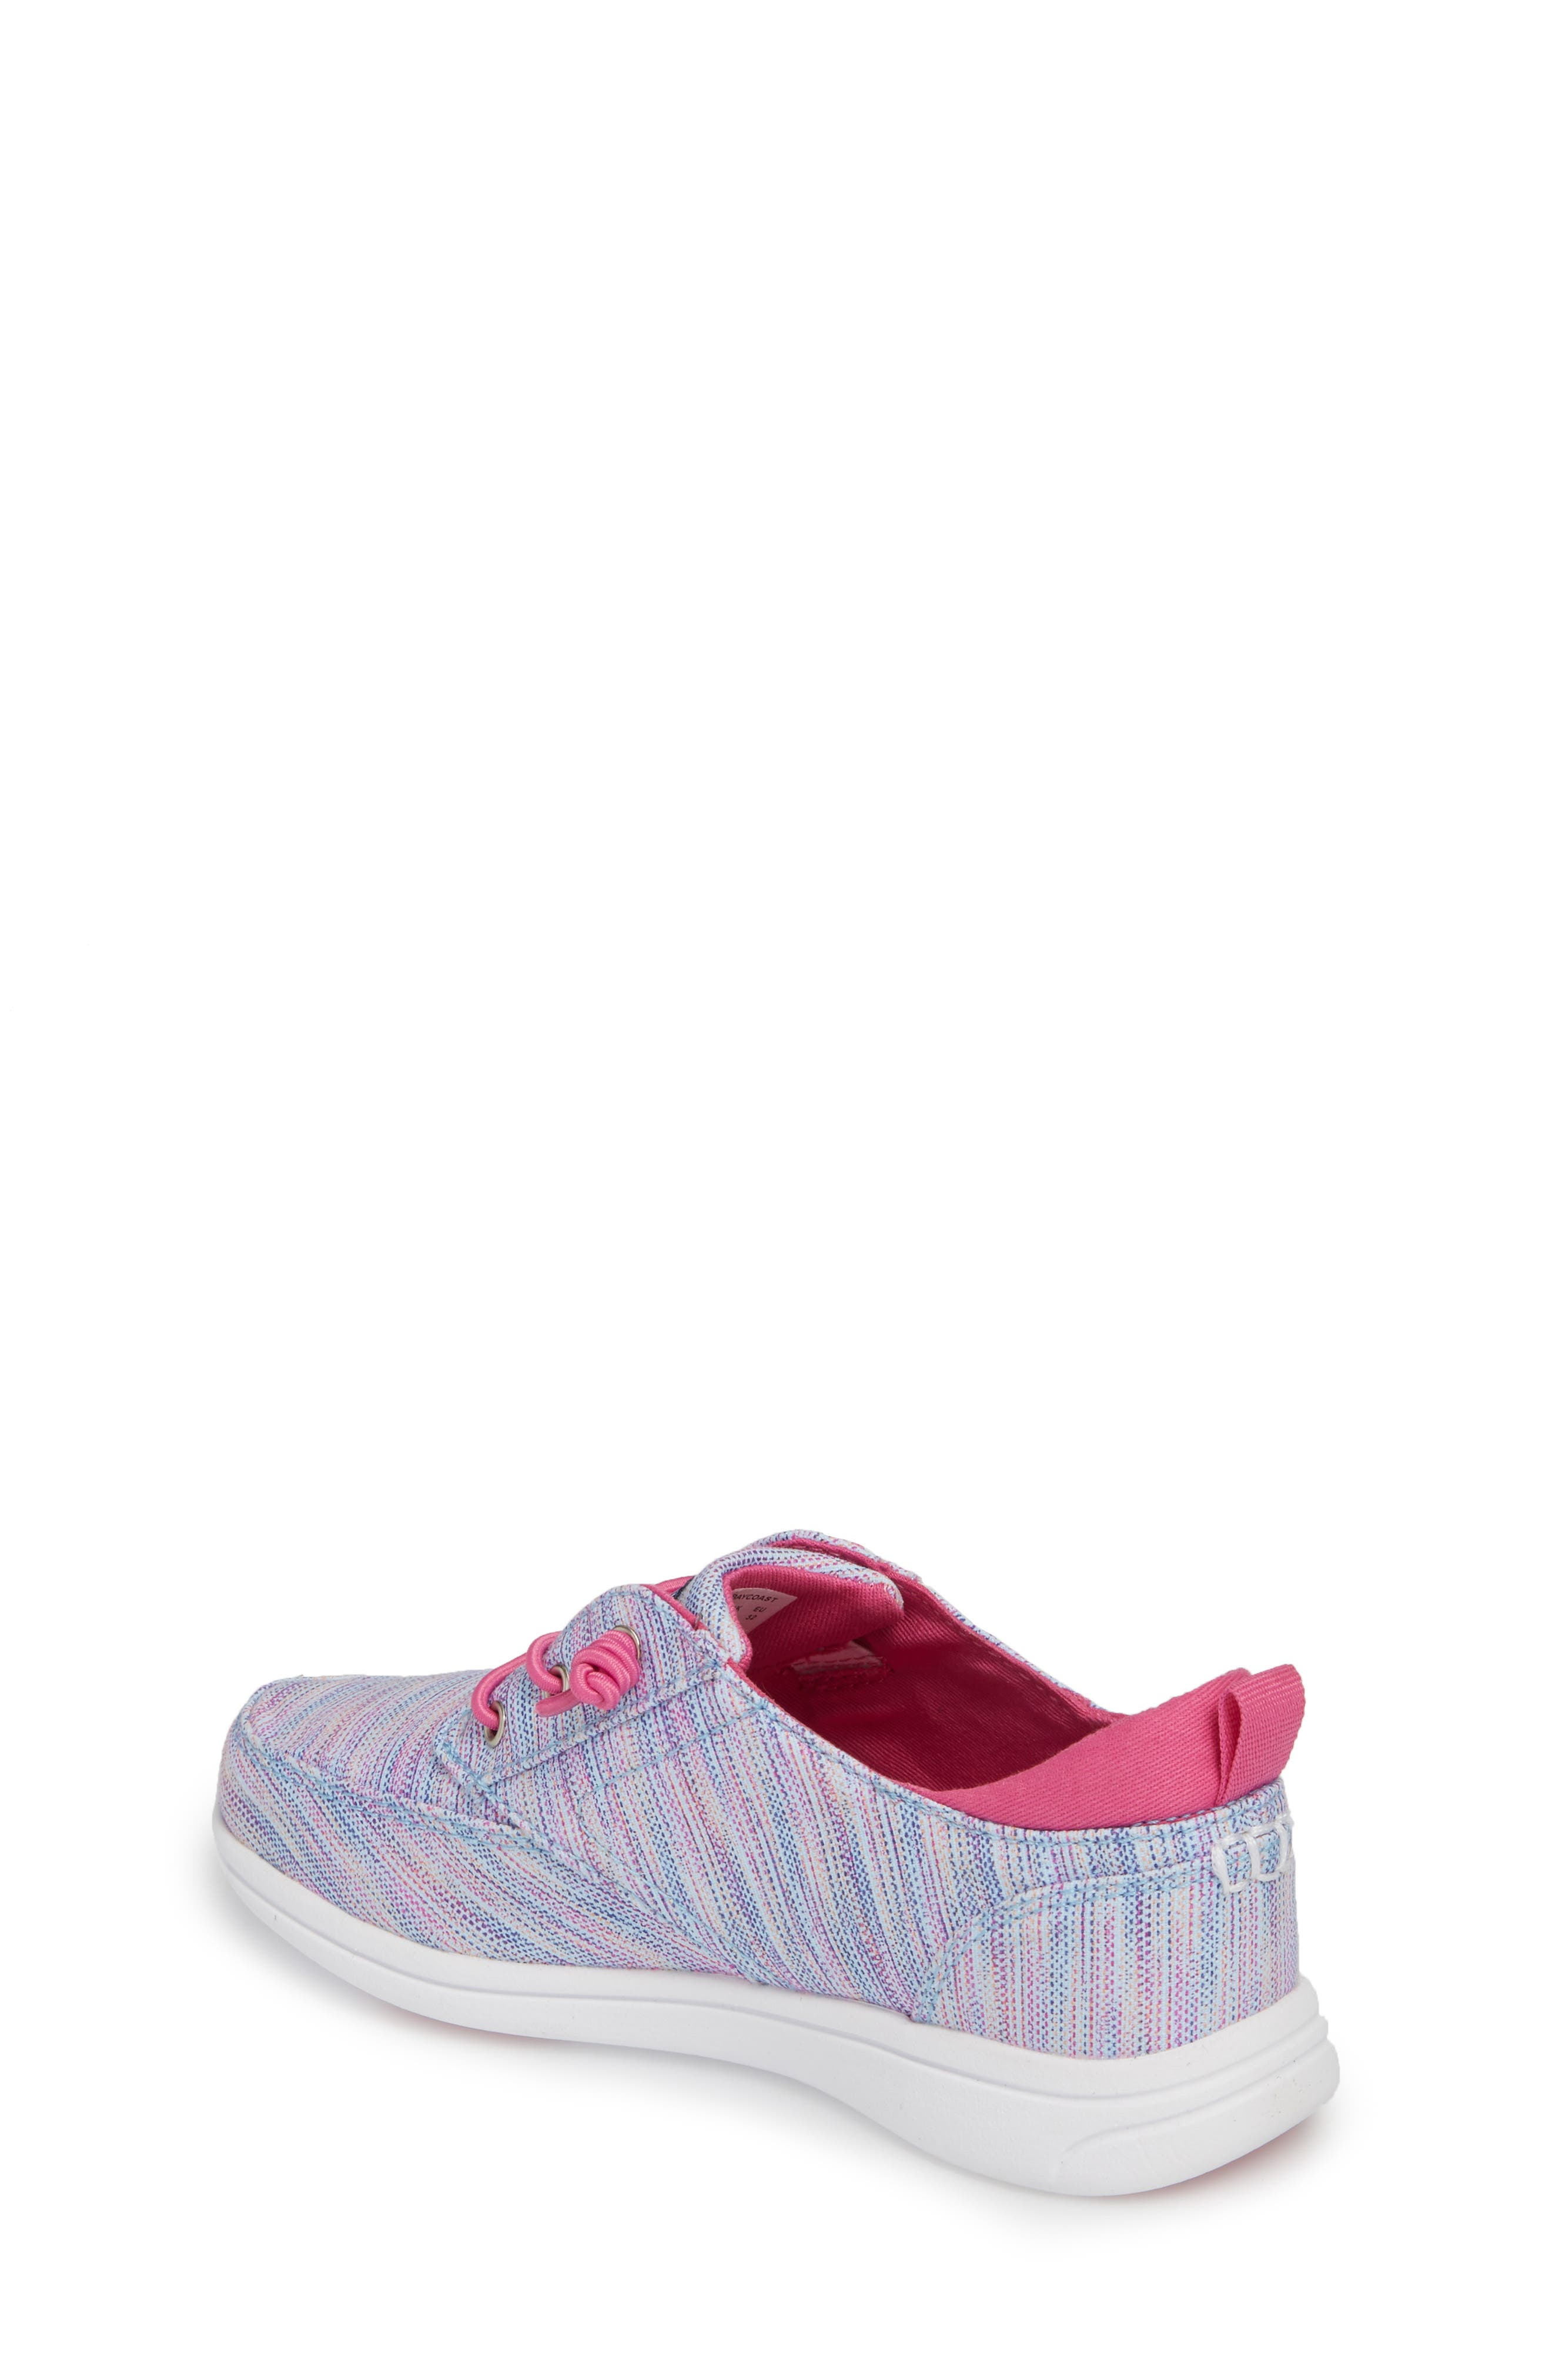 Baycoast Slip-On Sneaker,                             Alternate thumbnail 2, color,                             Blue Multi